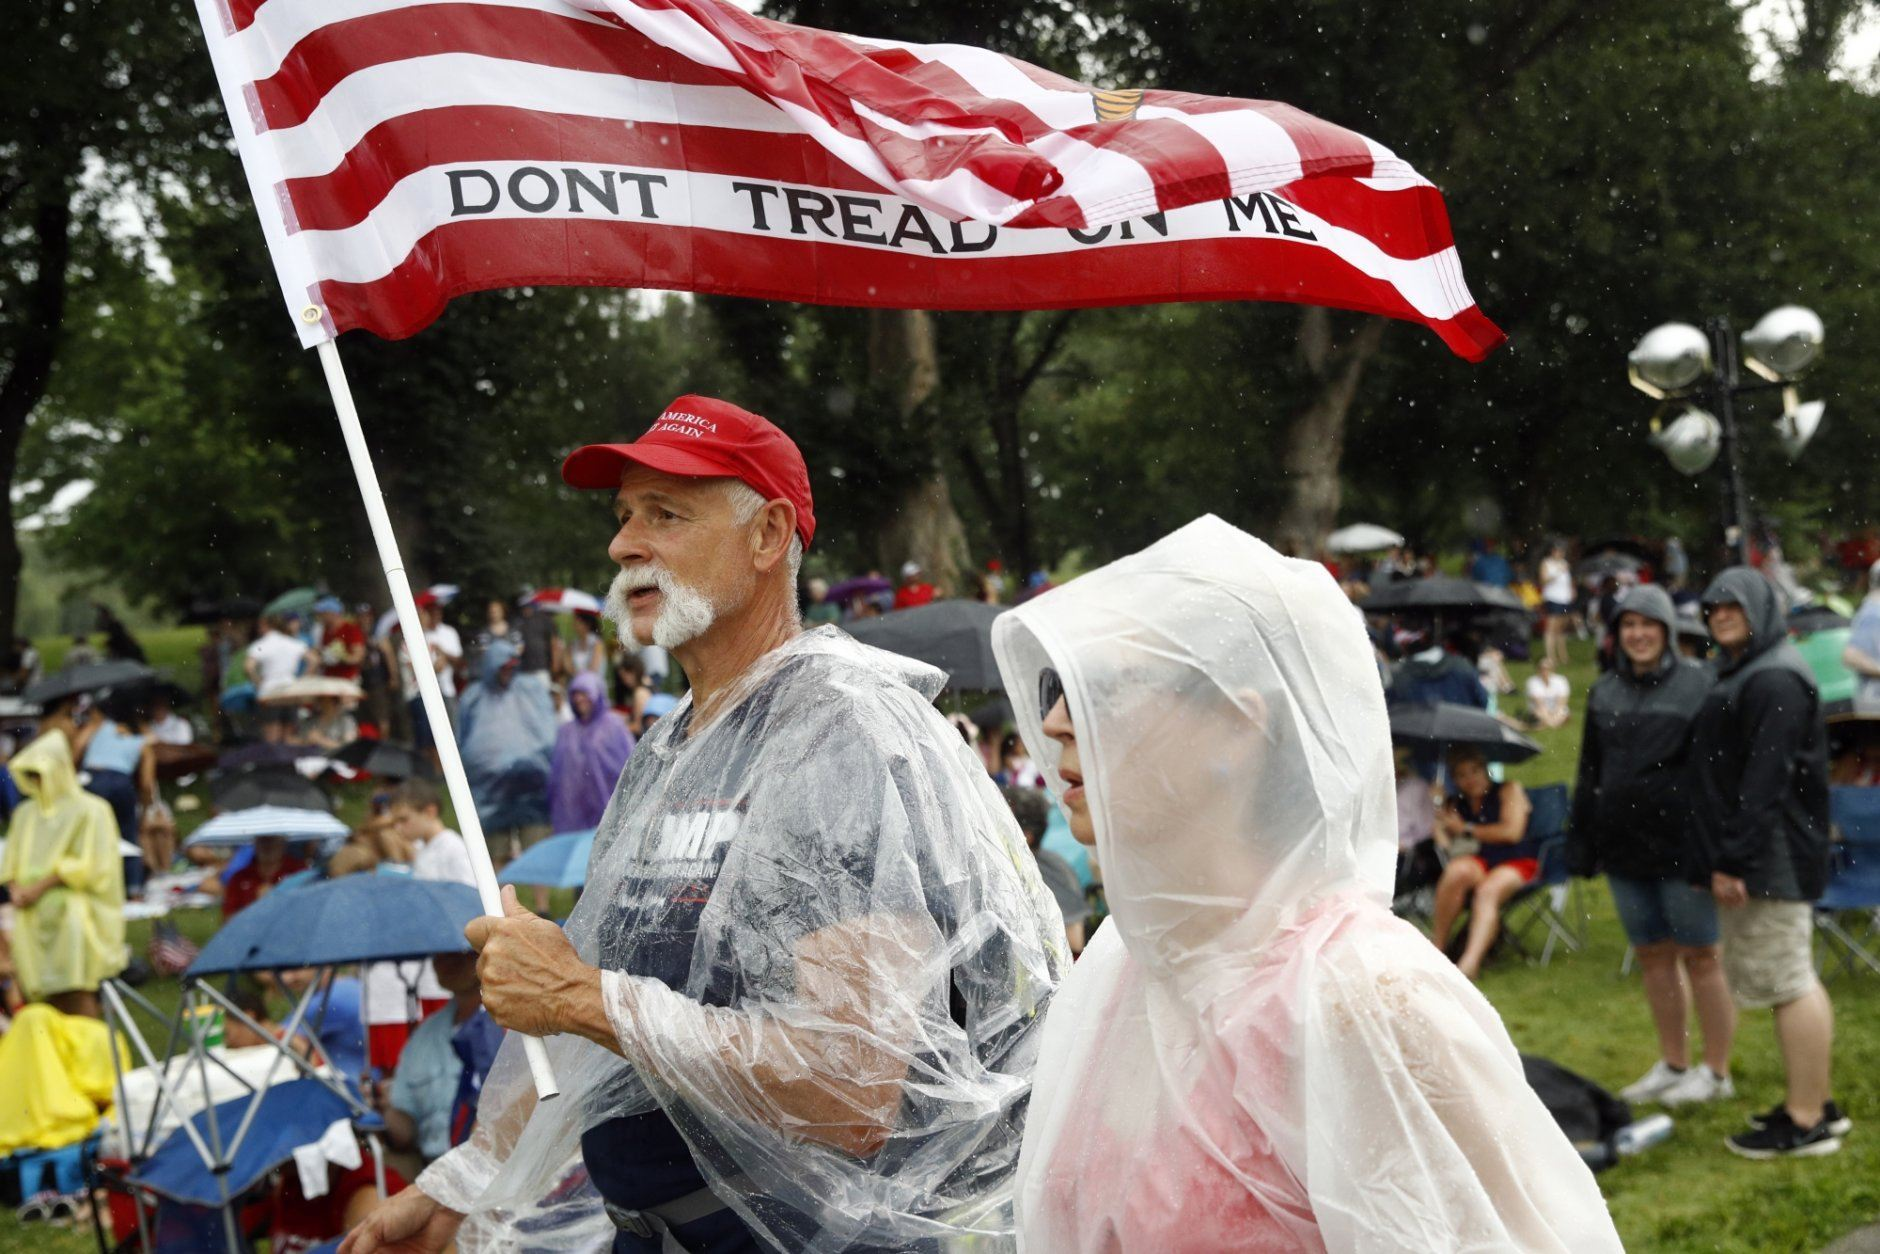 Supporters of President Donald Trump who did not wish to provide their names, walk on the National Mall in Washington as rain falls before Independence Day celebrations, Thursday, July 4, 2019. (AP Photo/Patrick Semansky)